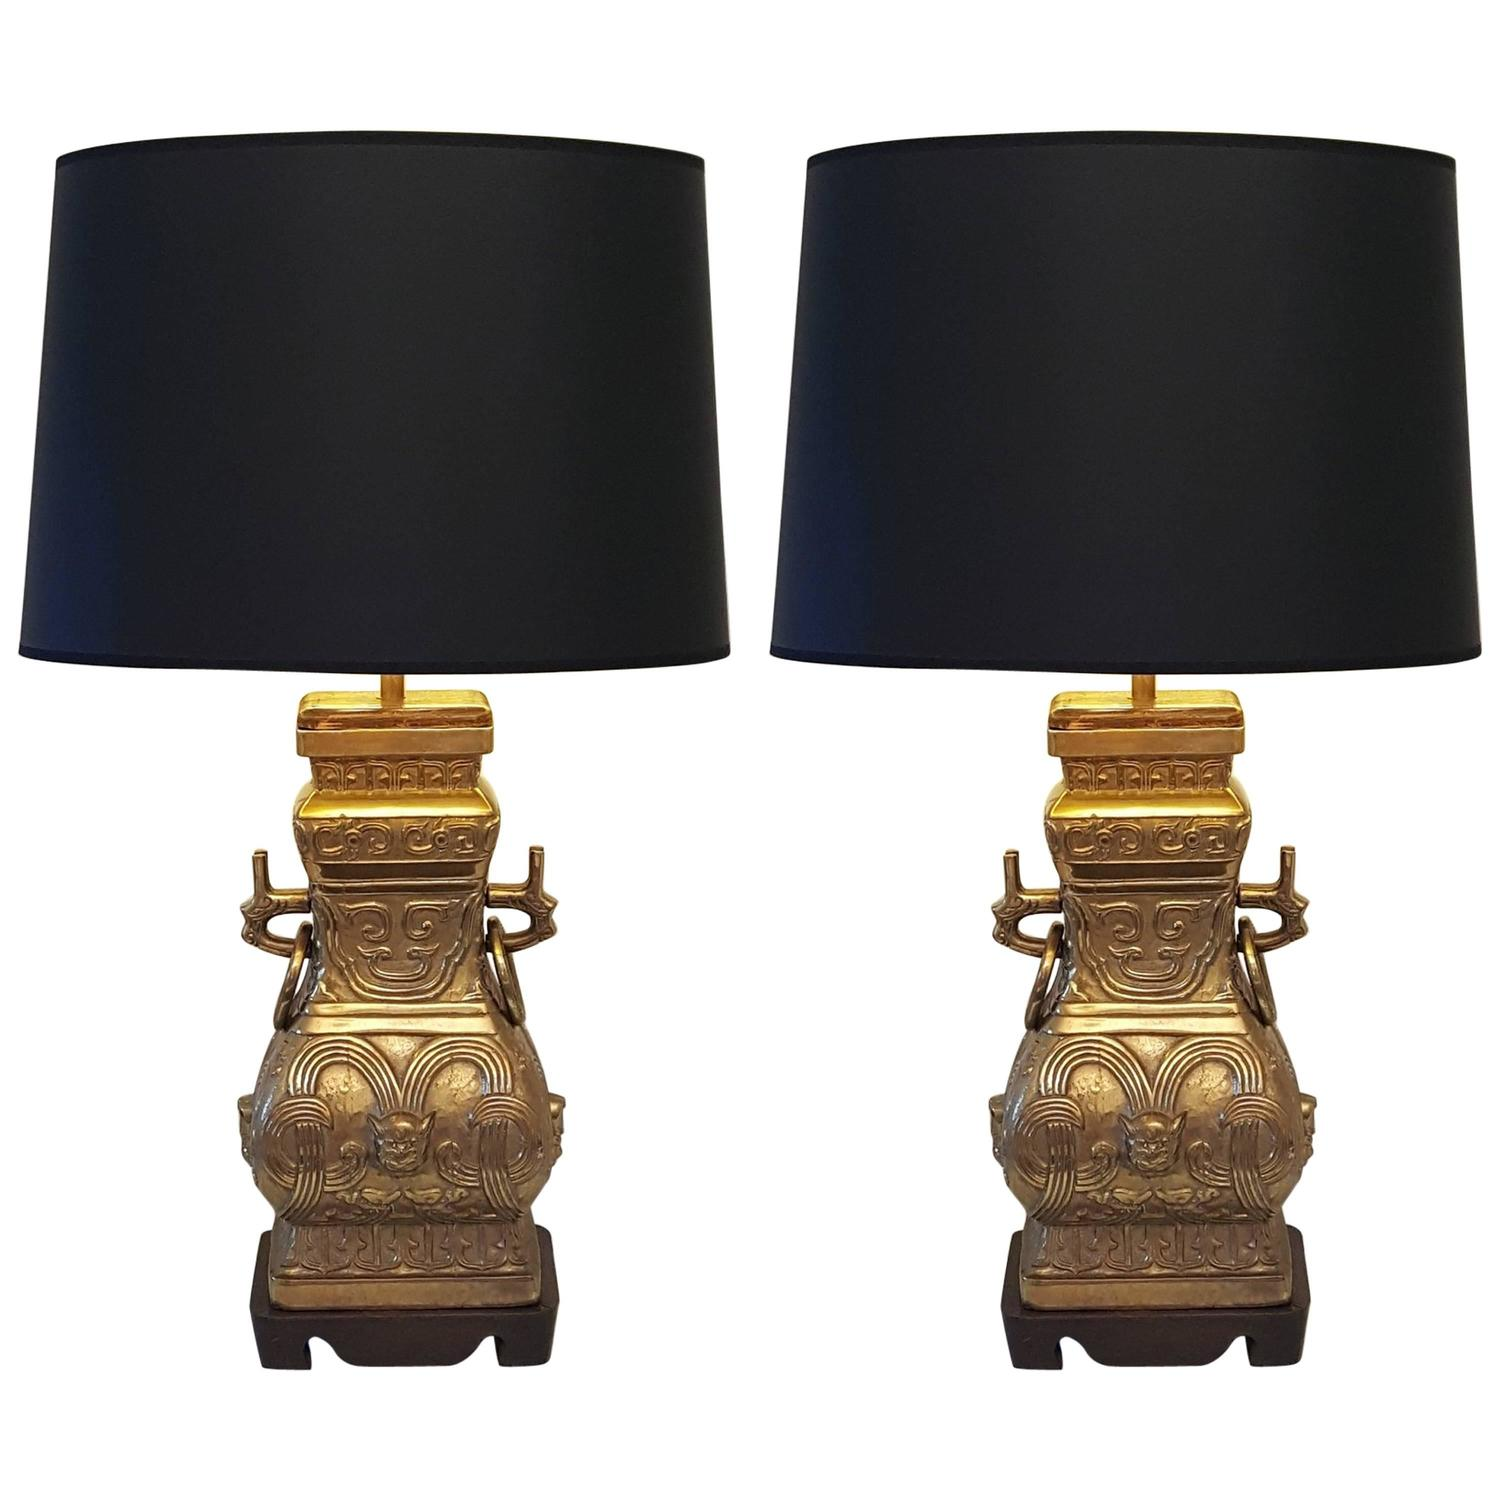 Chinoiserie lighting light fixtures 214 for sale at 1stdibs pair of impressive bronze brass chinese chinoiserie urn table lamps arubaitofo Gallery